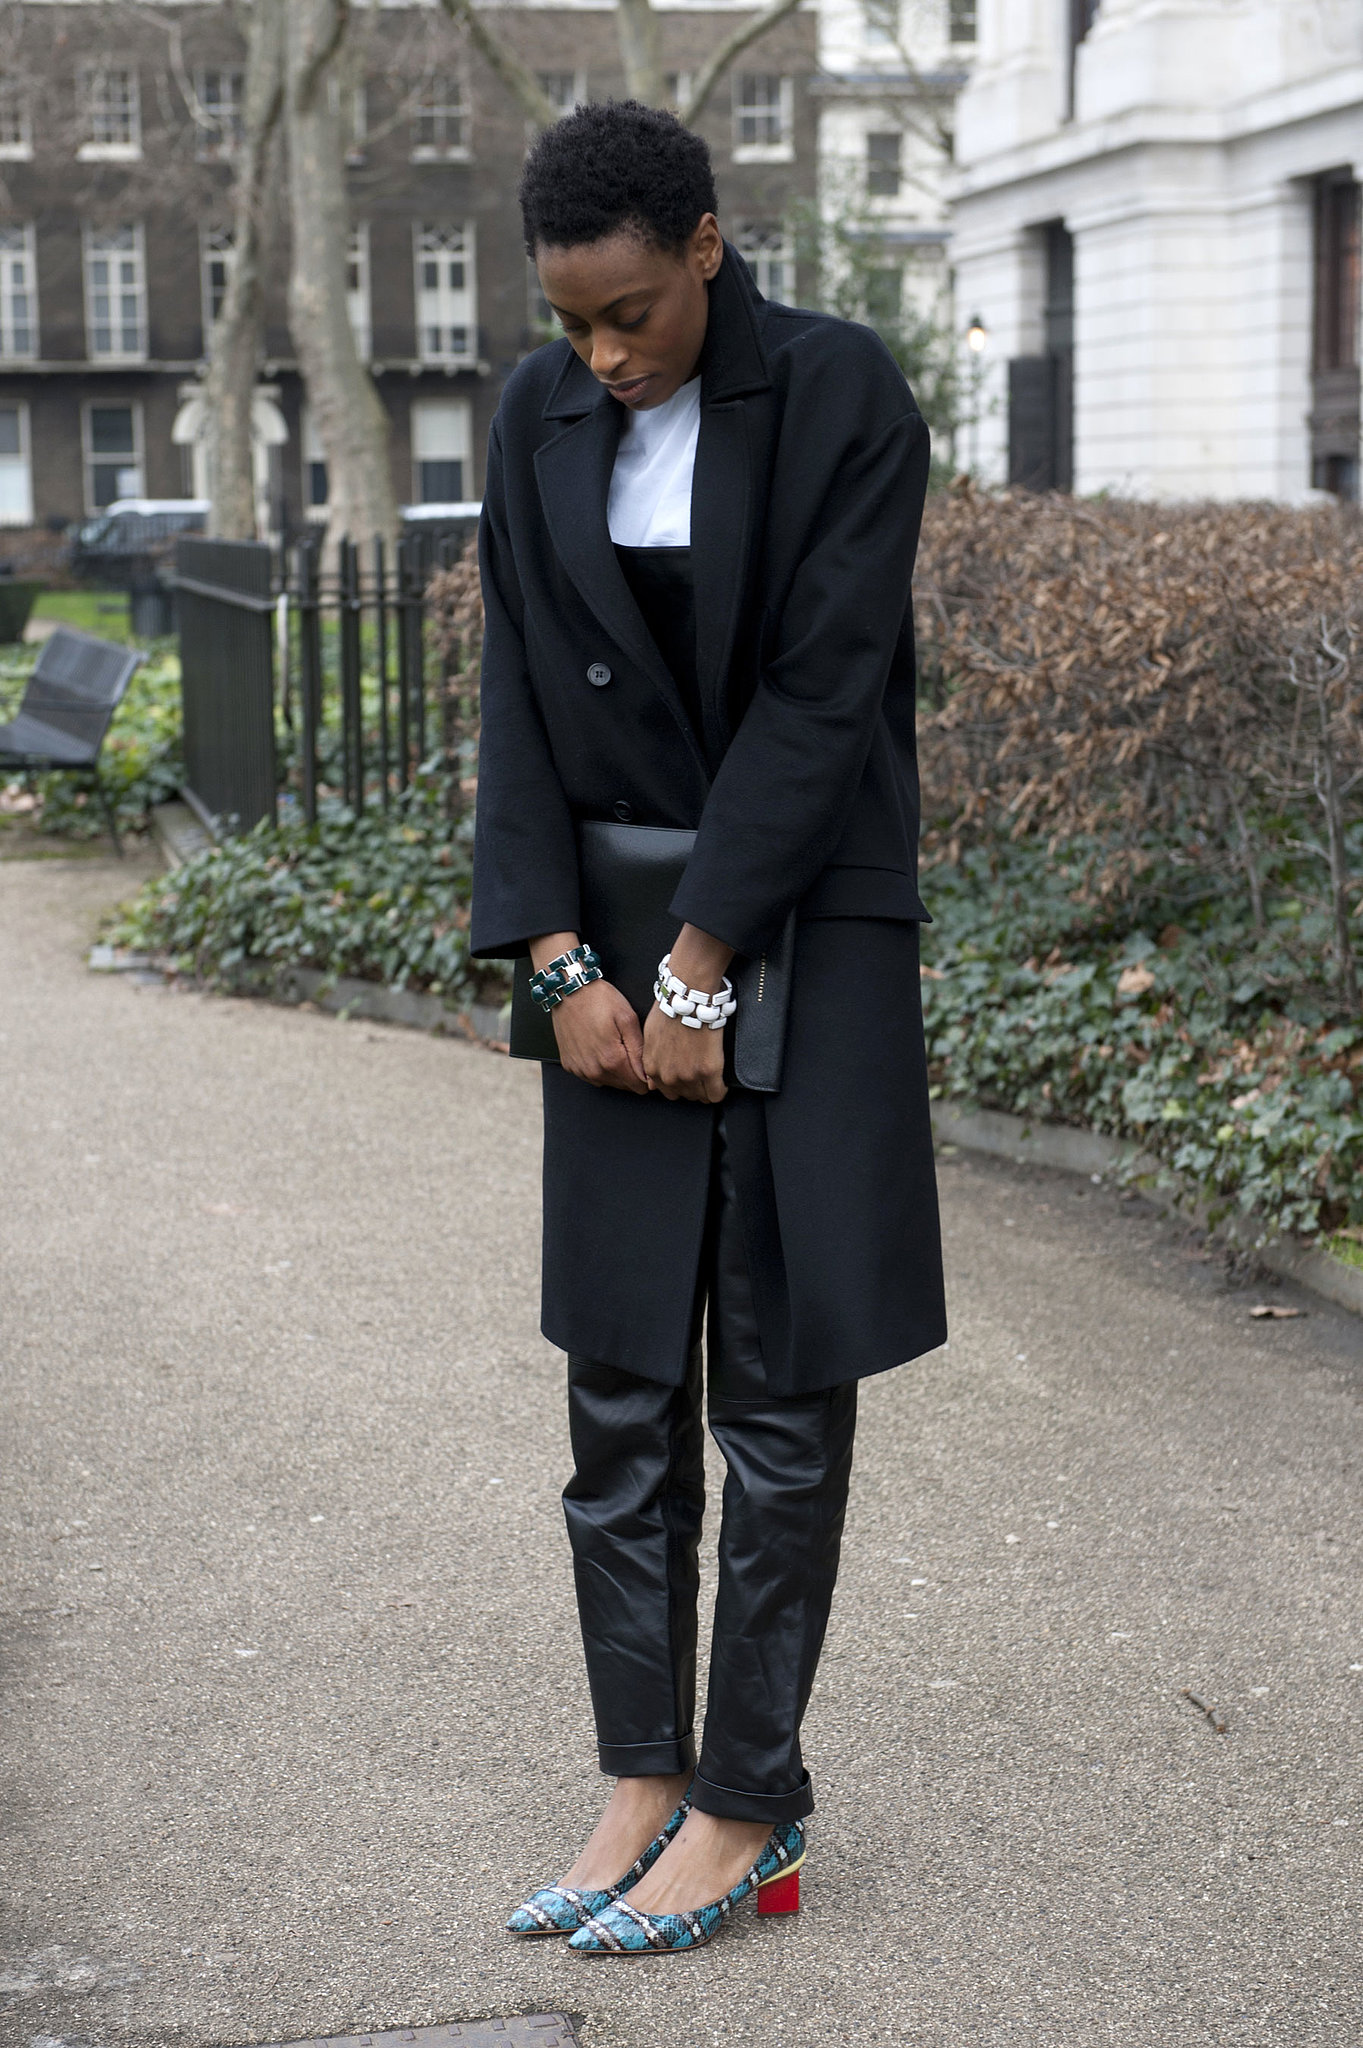 Leather pants are totally office-appropriate with chic low heels and a smart overcoat.